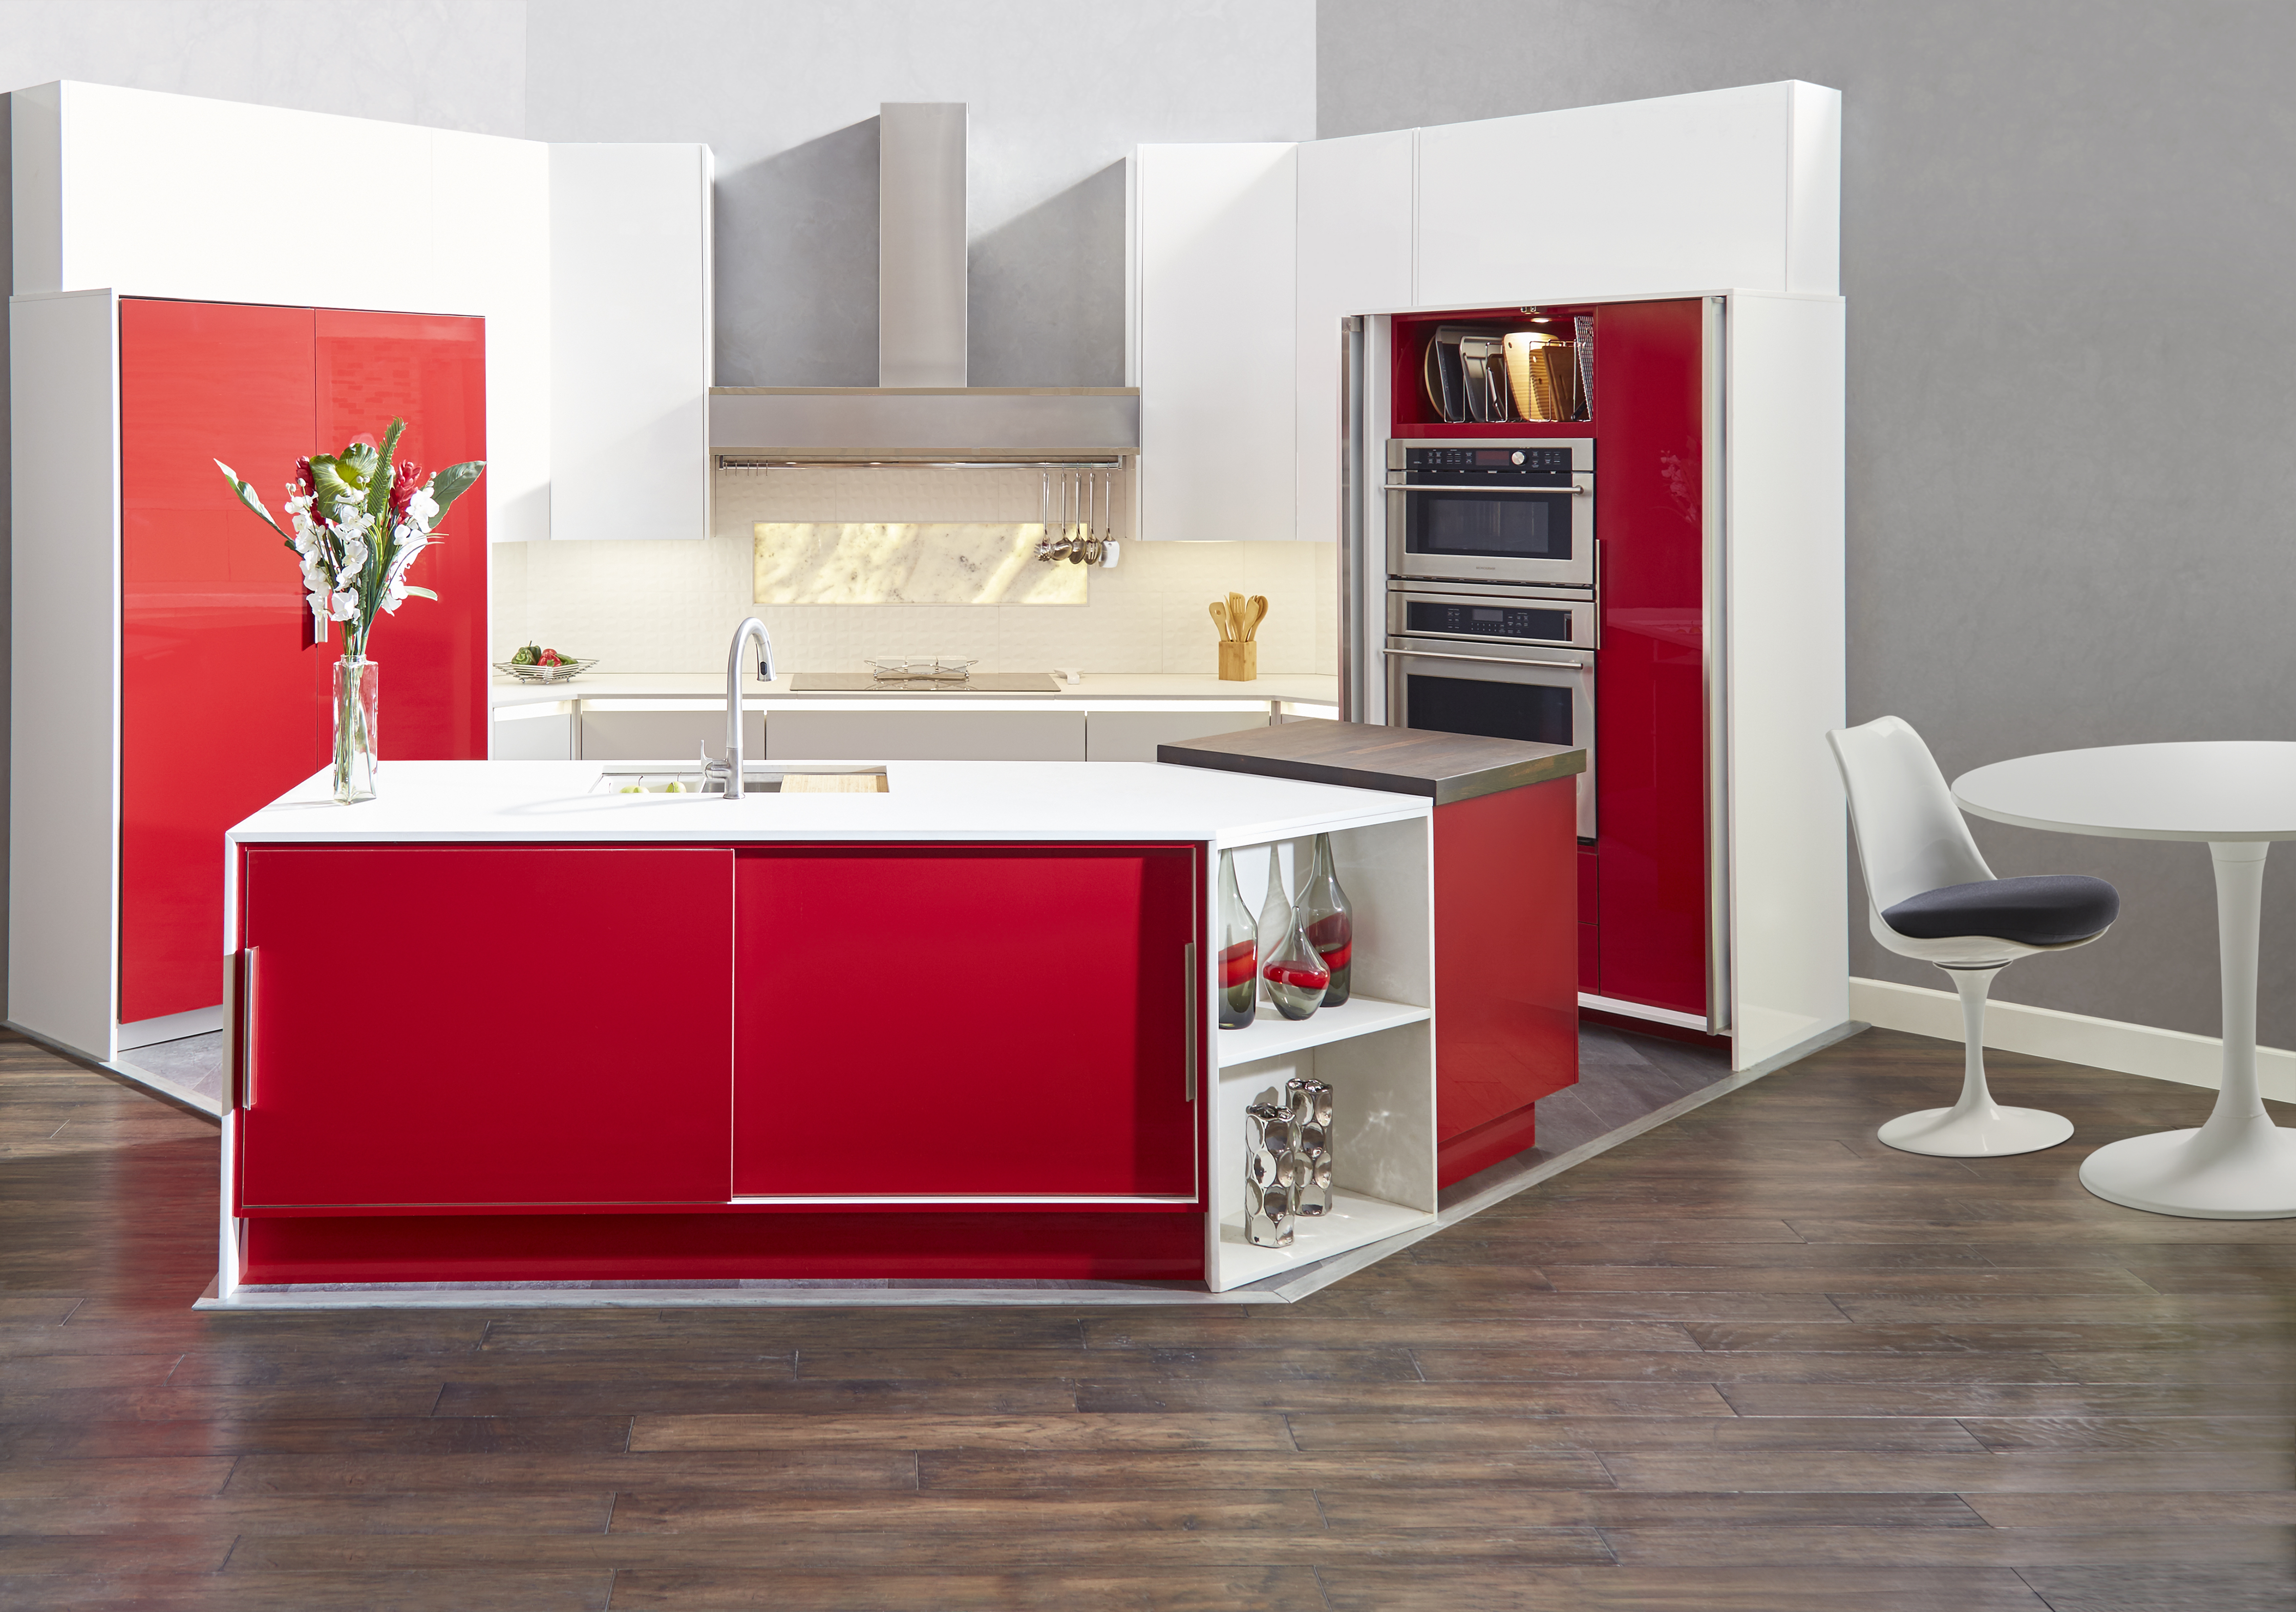 Set 2_Red_And_White_Kitchen_Overall_Headon_W_O_Models_Doors_Closed